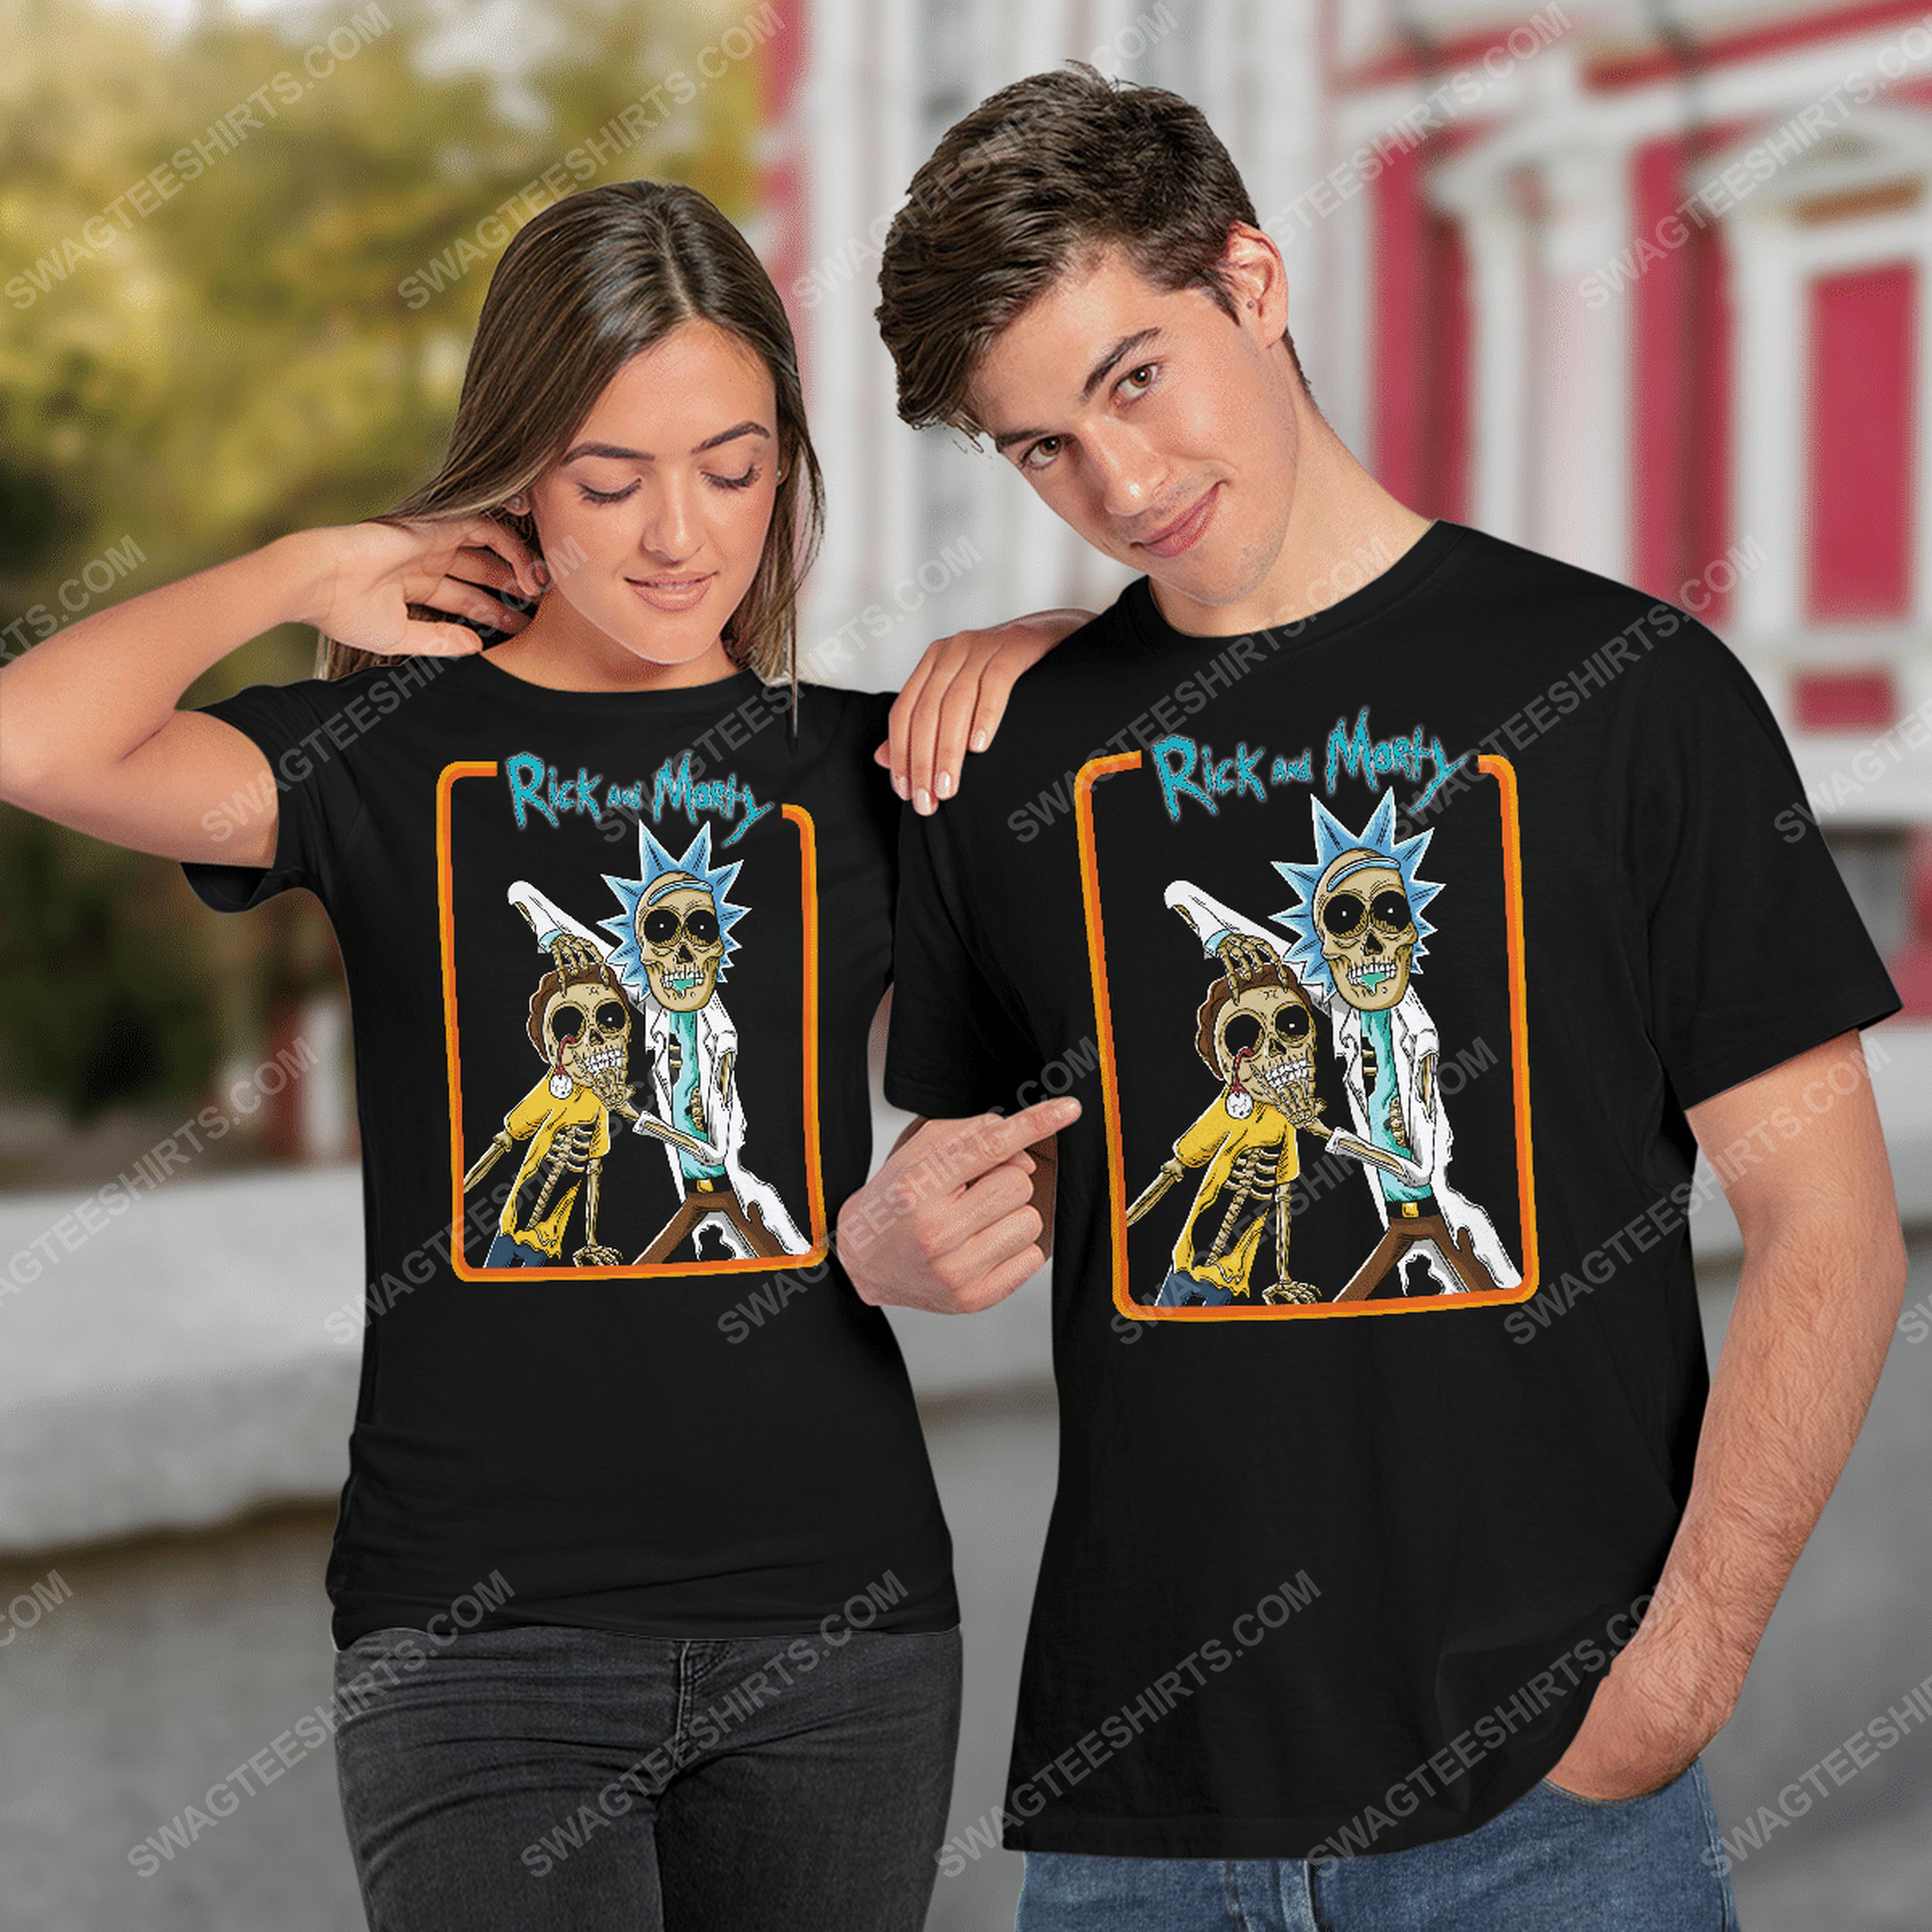 Rick and morty tv show zombie halloween tshirt(1)